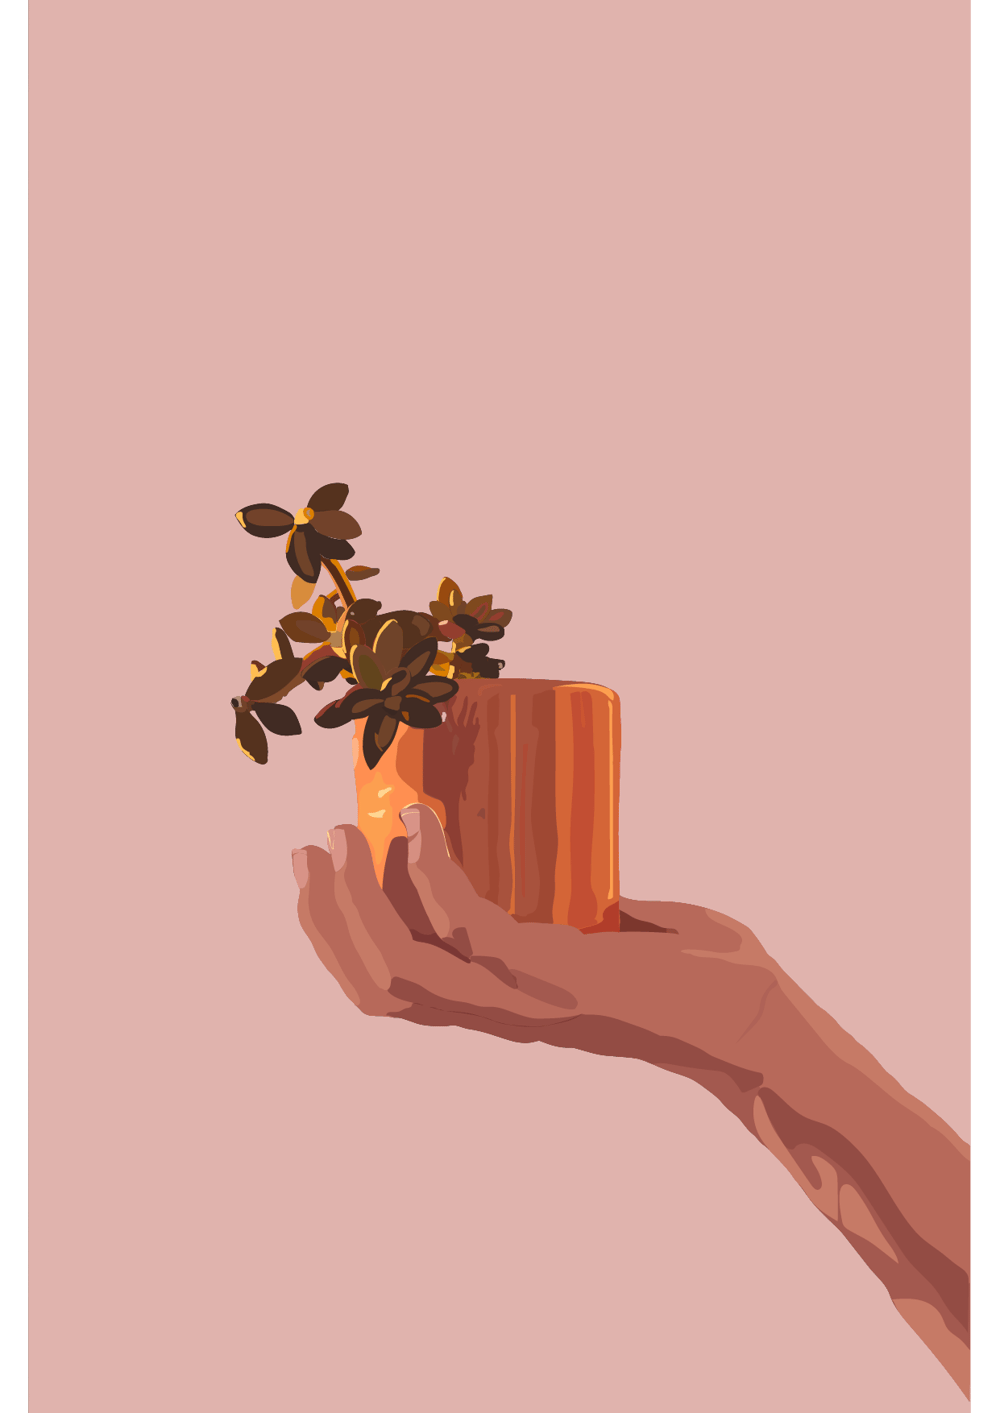 My First Digital Illustration - image 1 - student project